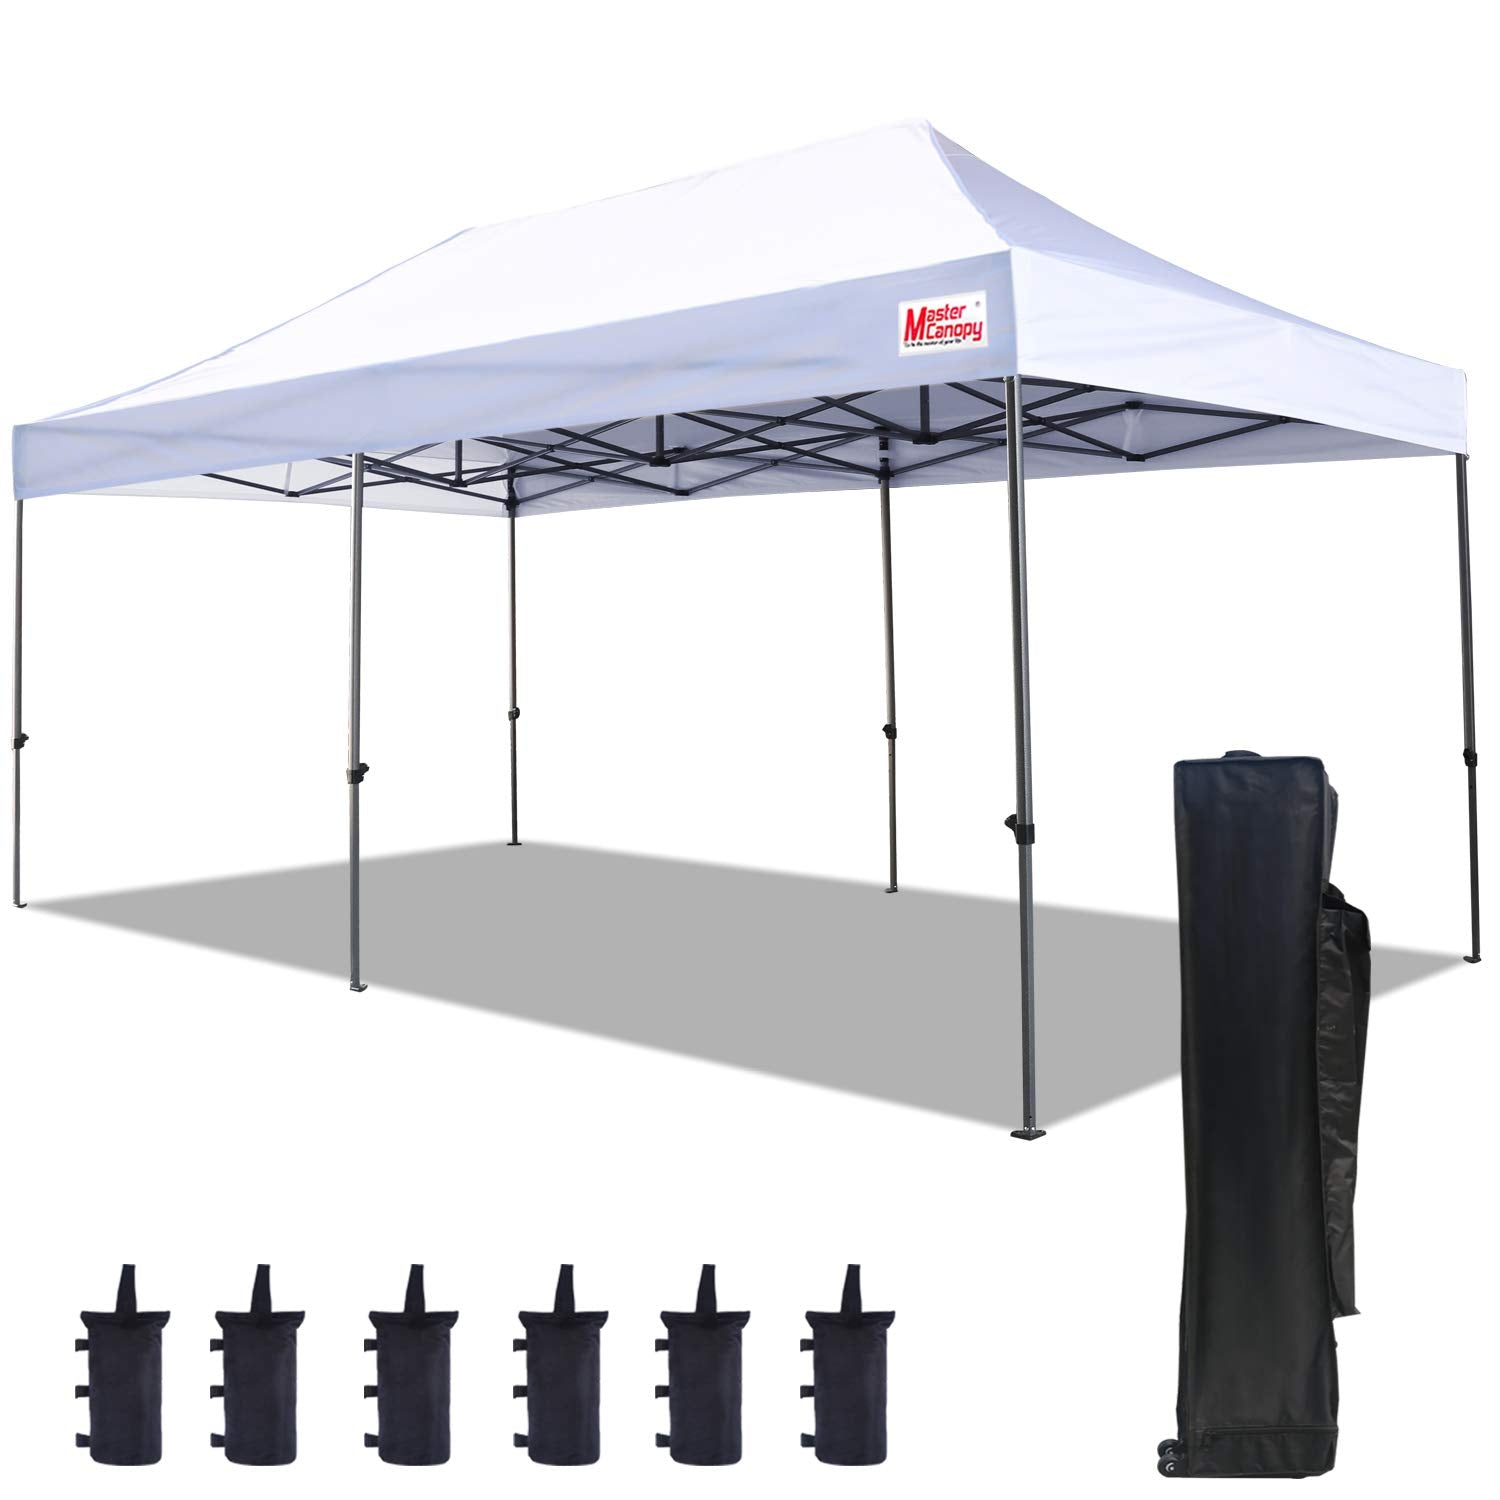 MasterCanopy Pop Up Canopy Tent 10x20 Commercial Instant Canopies with Heavy Duty Roller Bag,Bonus 4 Canopy Sand Bags (10x20 Feet, White)